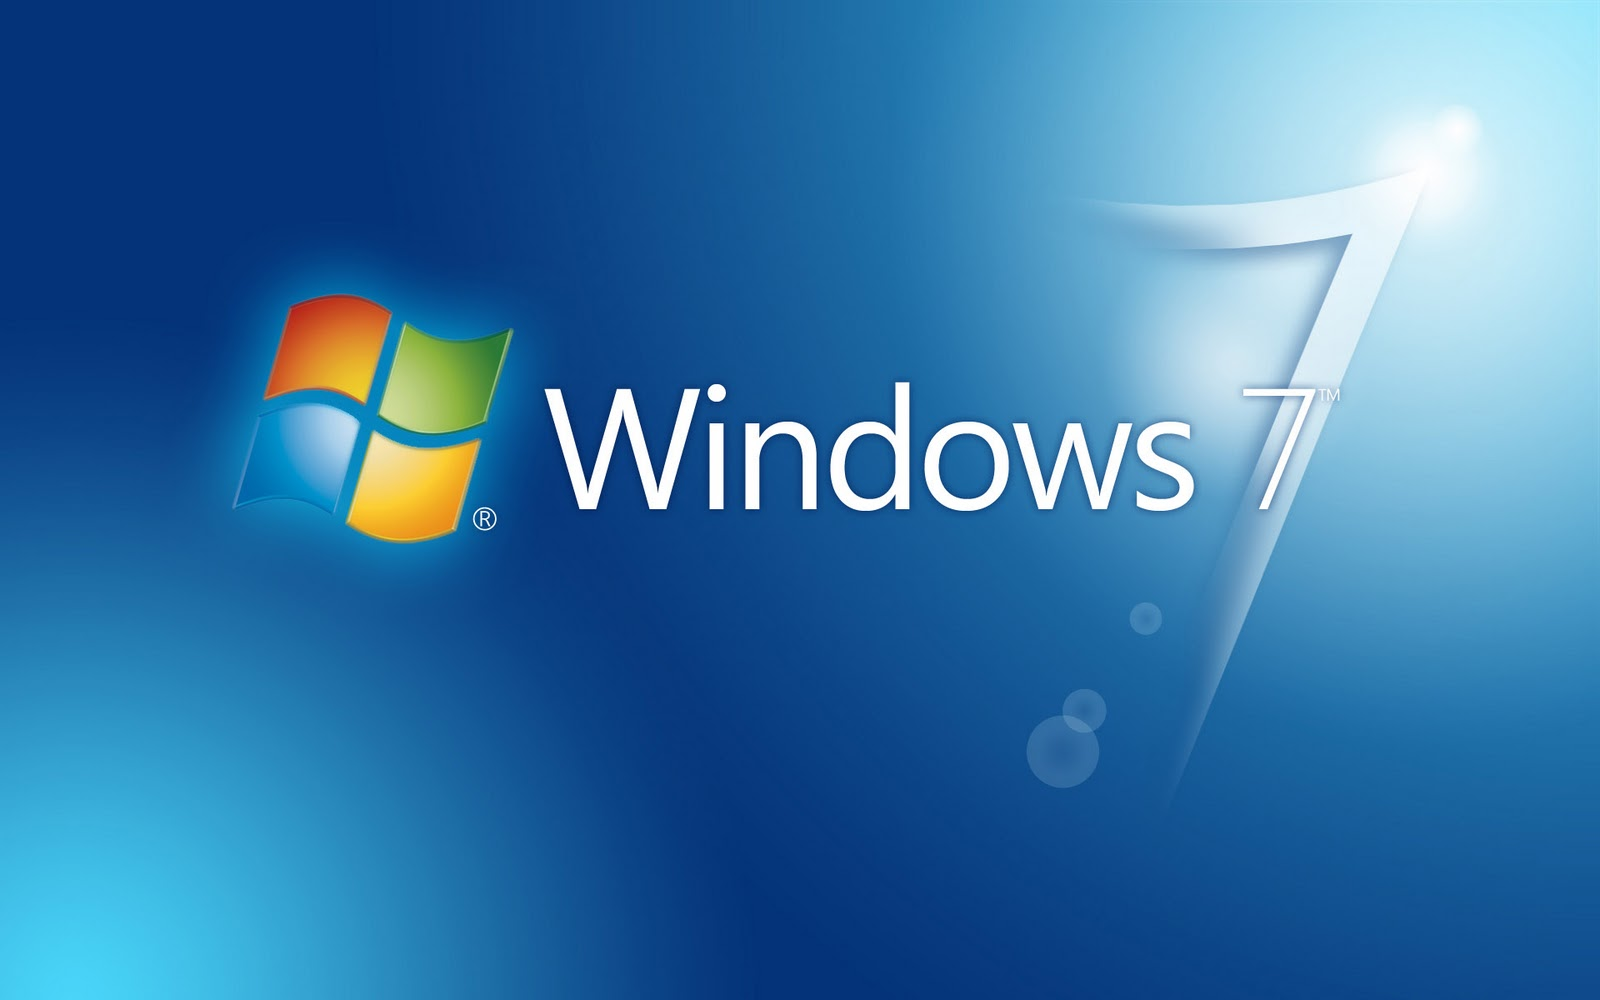 47+] Live Wallpapers for Windows 7 Free